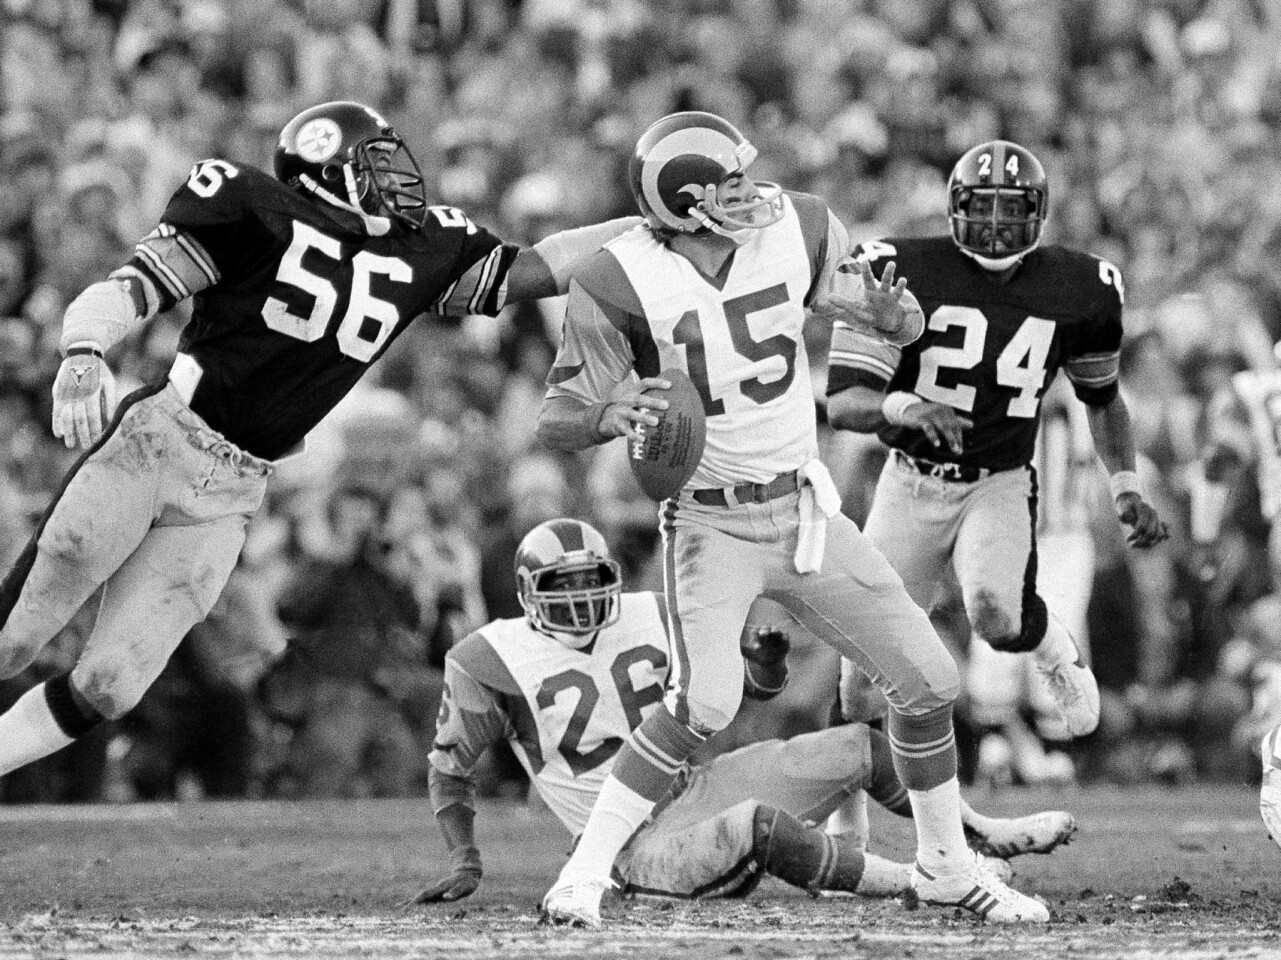 Rams quarterback Vince Ferragamo (15) prepares to pass but never gets the ball past Steelers' Robin Cole (56), during Super Bowl XIV action at the Rose Bowl in Pasadena on Jan. 21, 1980. Ferragamo is sacked on the play. The Rams lost to the Steelers, 31-19.